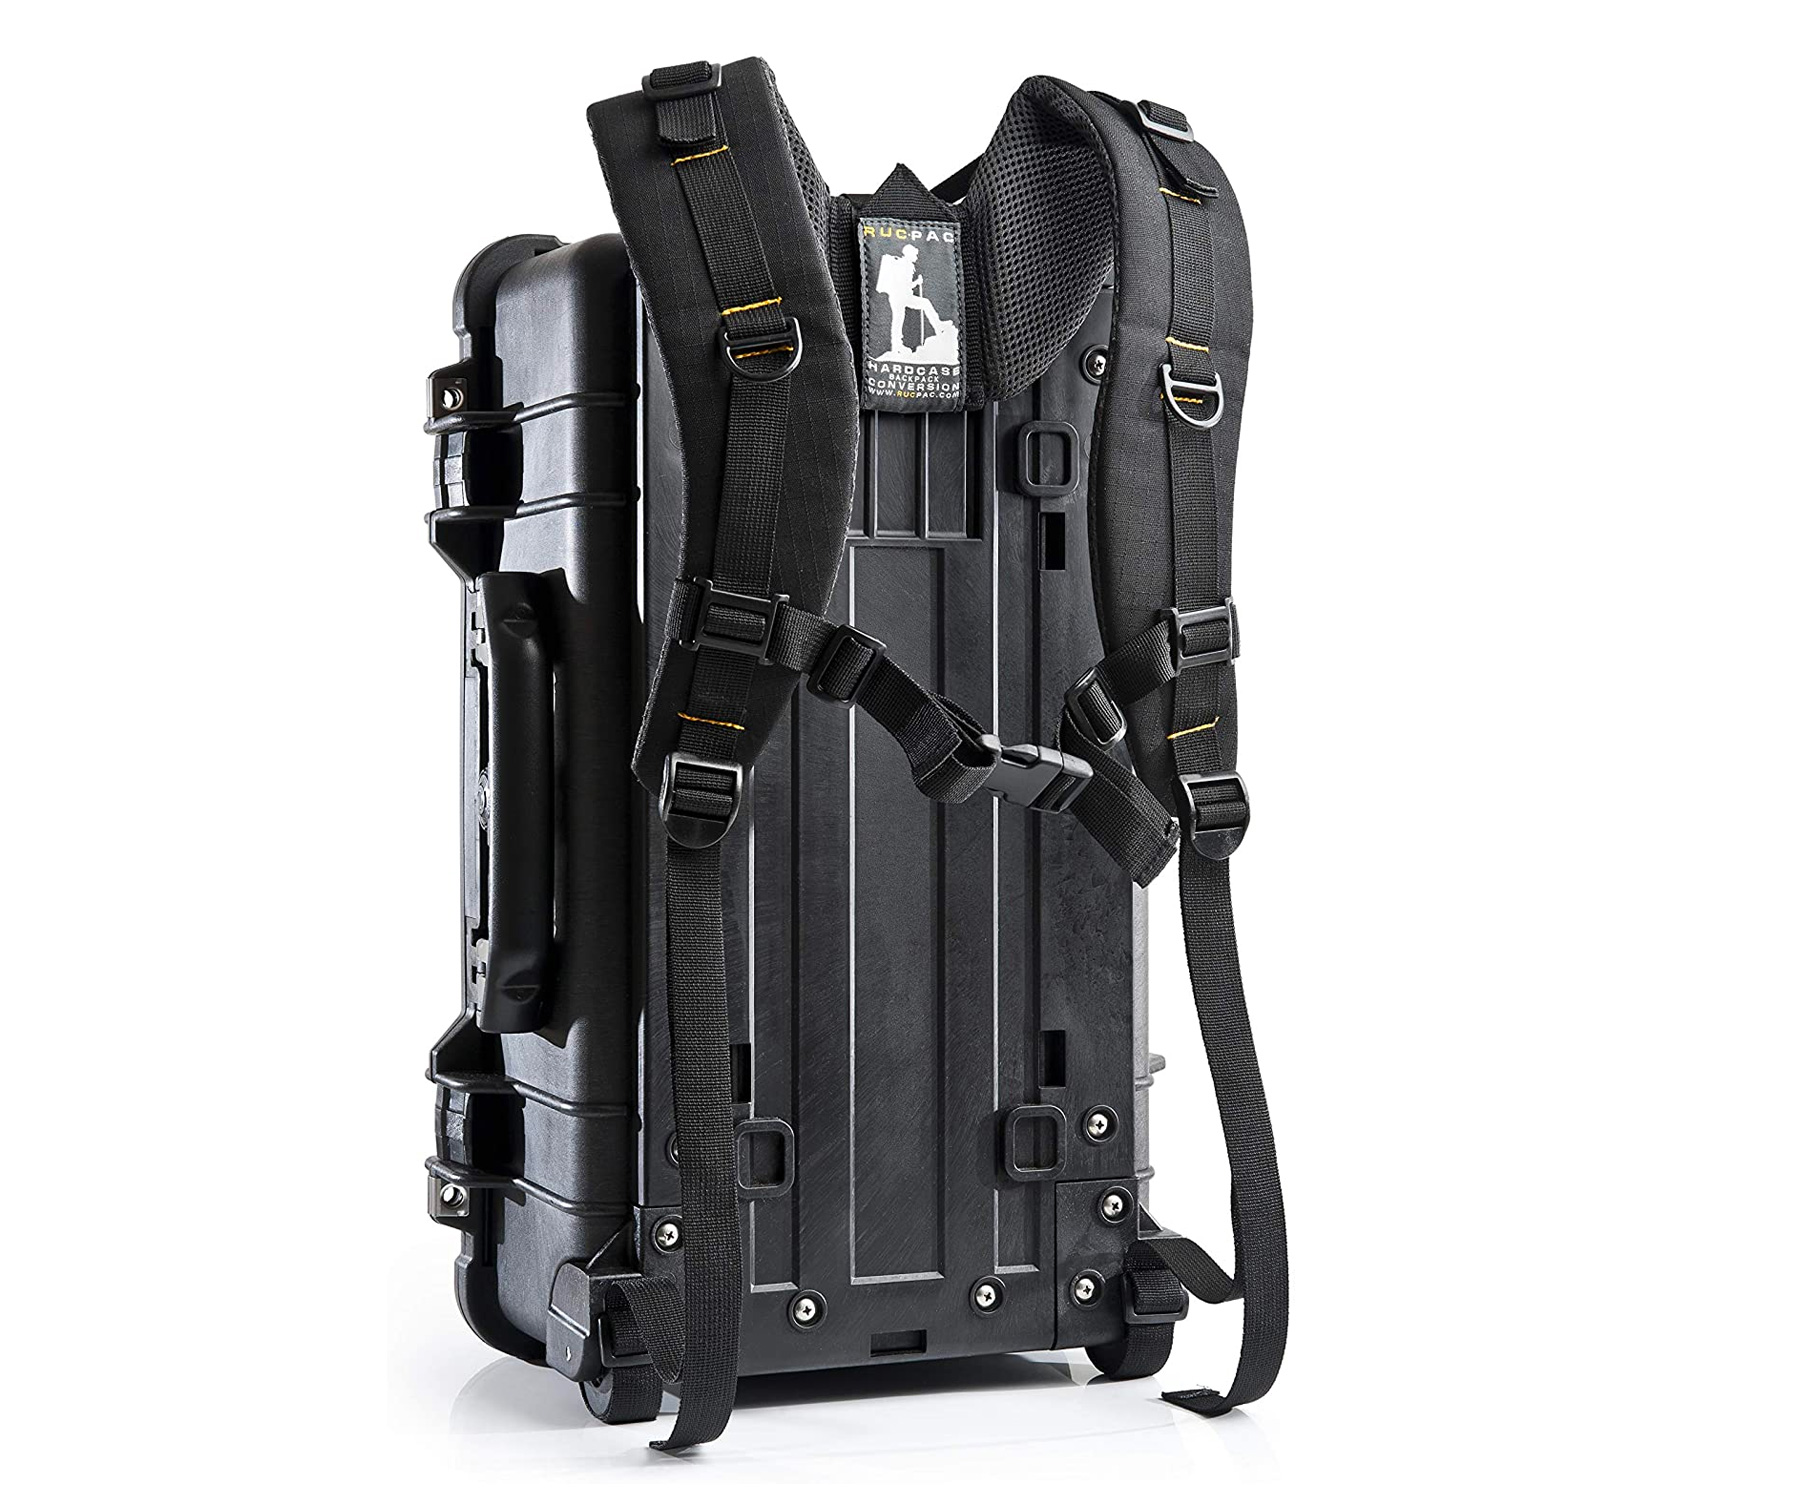 Turn Your Pelican into a Pack with this Comfy Conversion Kit at werd.com